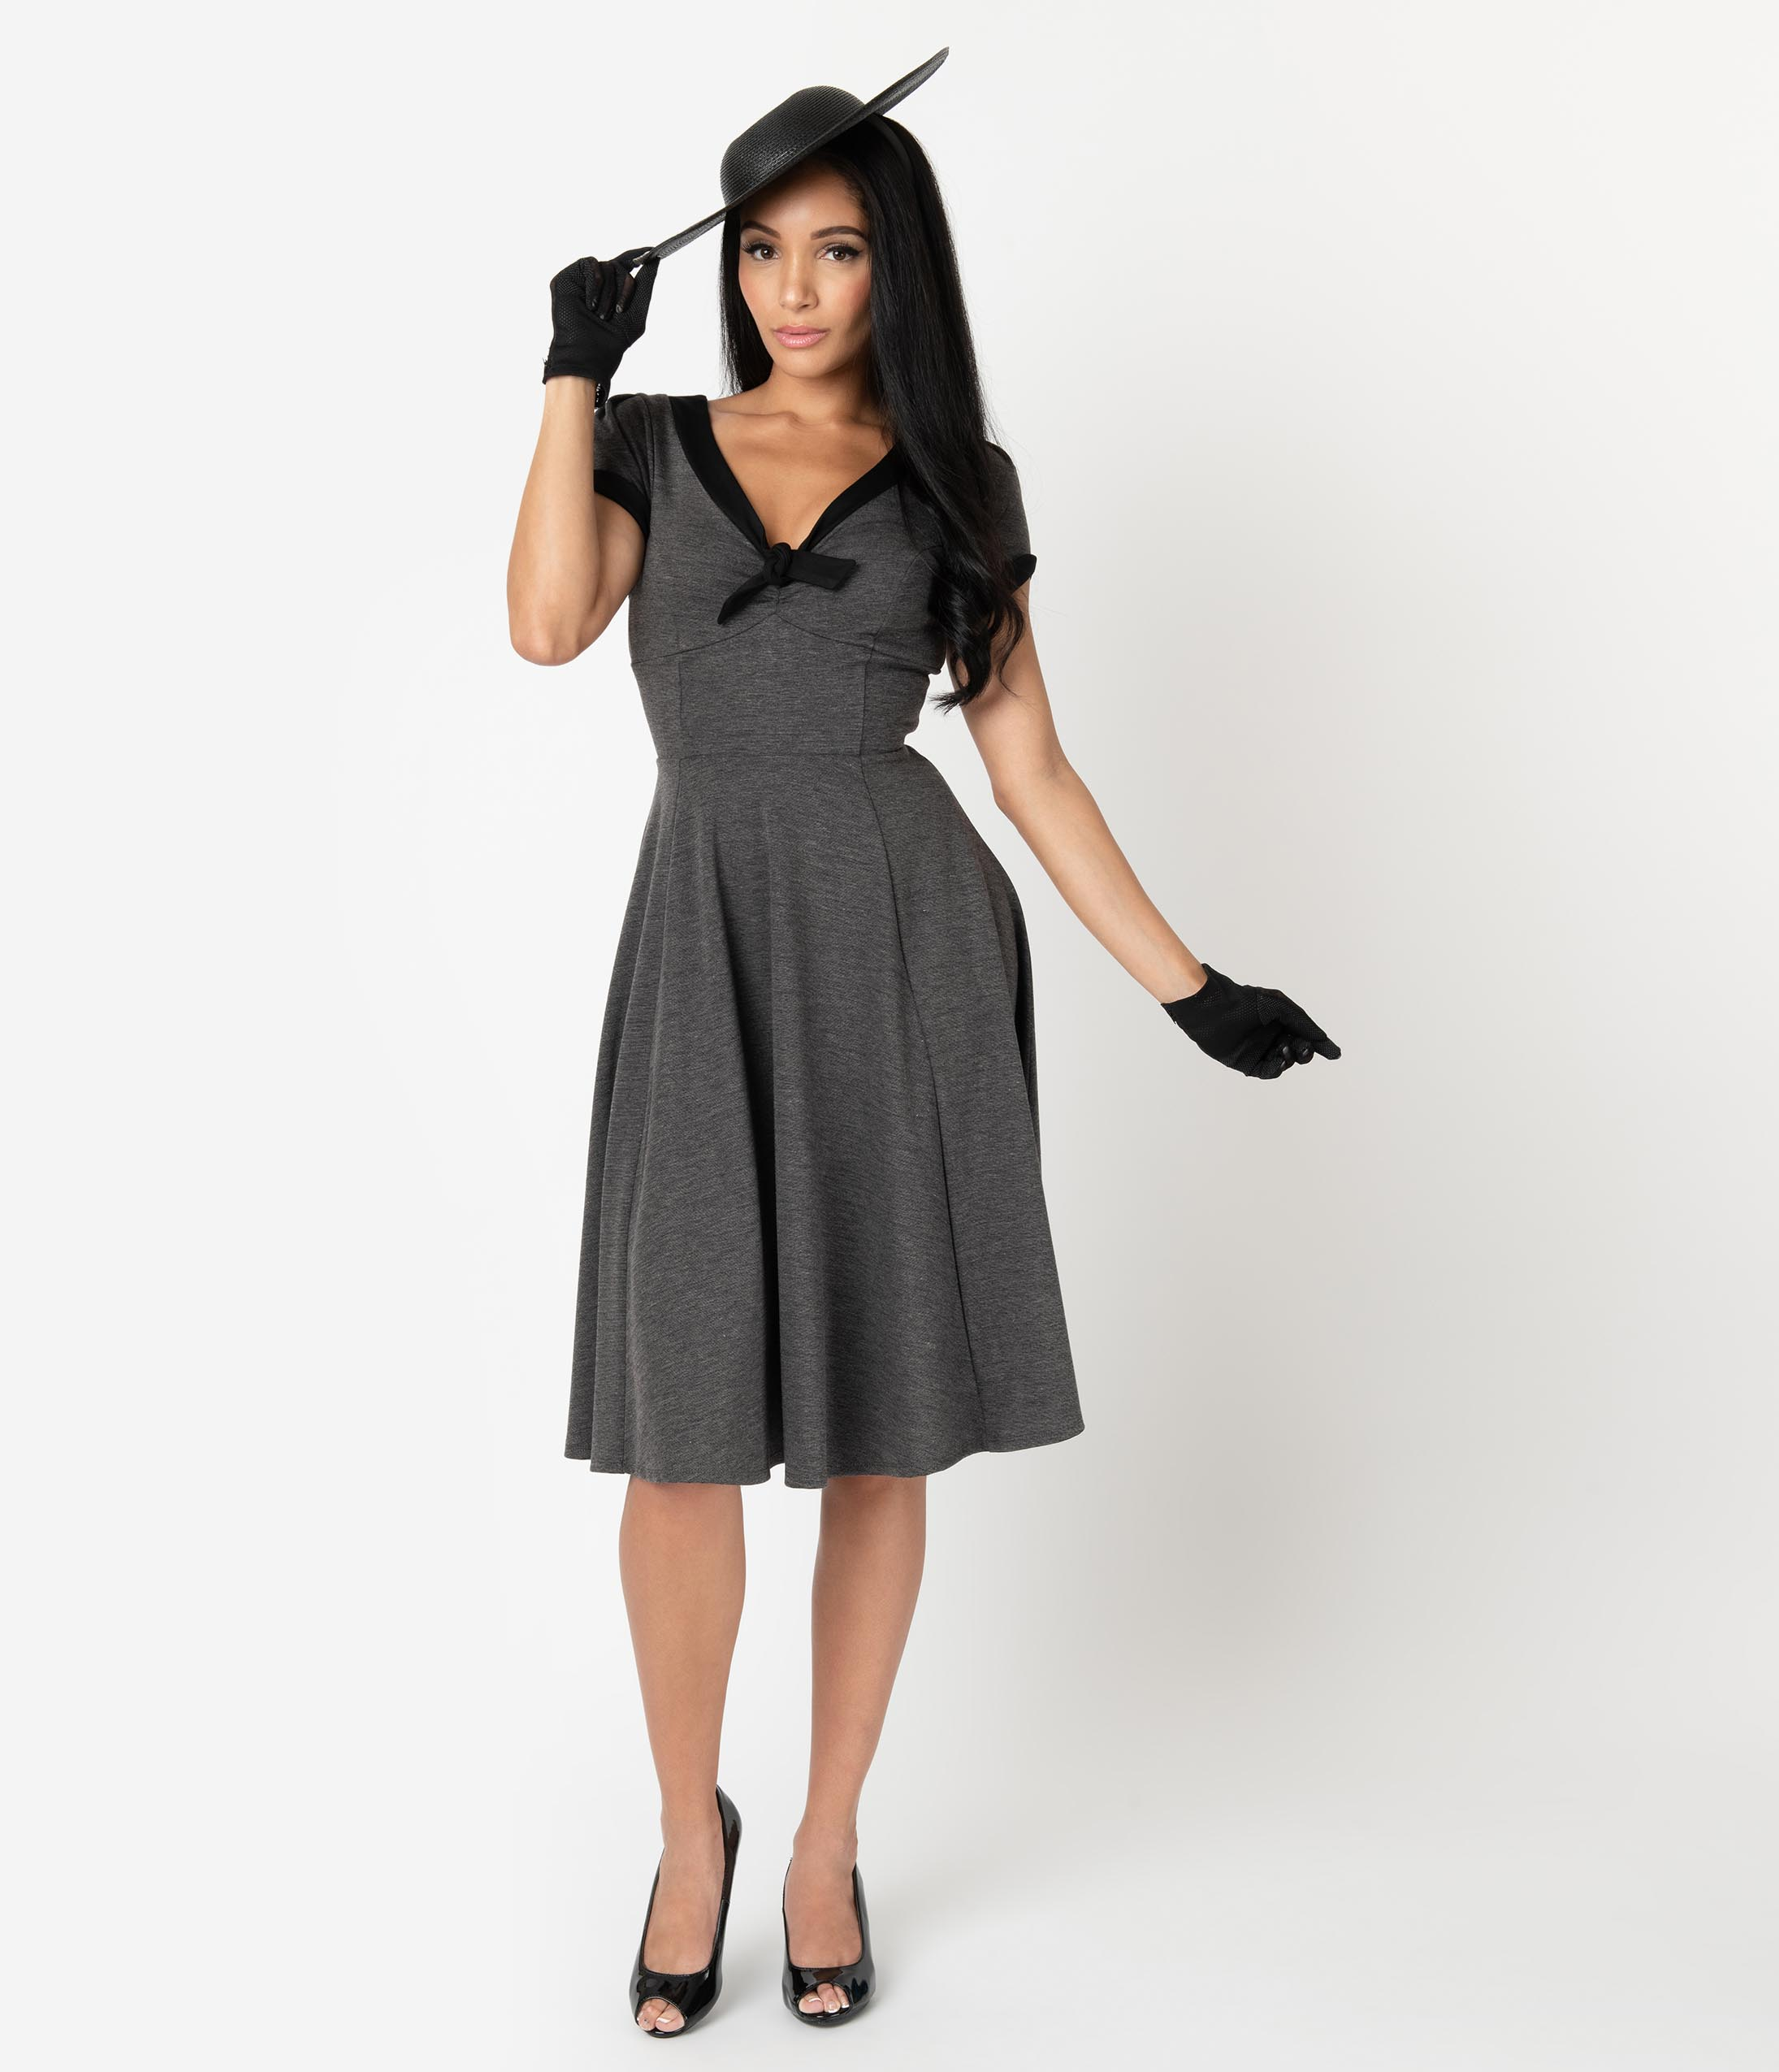 500 Vintage Style Dresses for Sale | Vintage Inspired Dresses Unique Vintage 1940S Style Grey  Black Natalie Swing Dress $78.00 AT vintagedancer.com